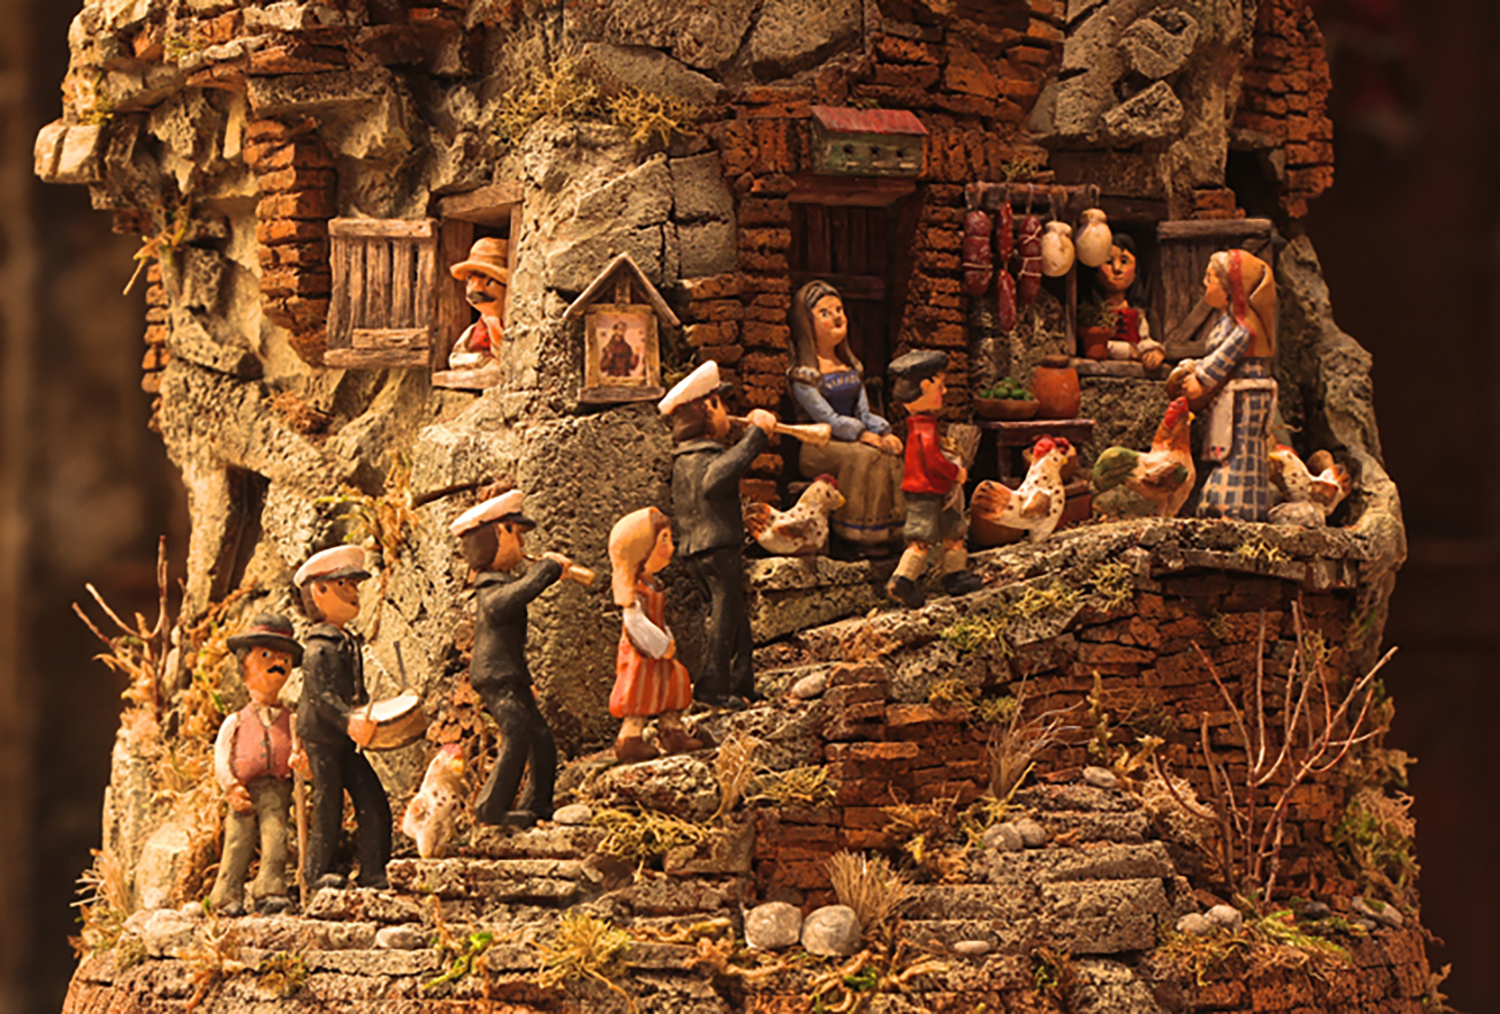 Figure 13: Detail view of Figure 12. R. Michael Palan, a professional artist from Westchester County, New York, created this Nativity in 2015 from cork, wood, polymer clay and acrylic paint. On loan from R. Michael Palan.